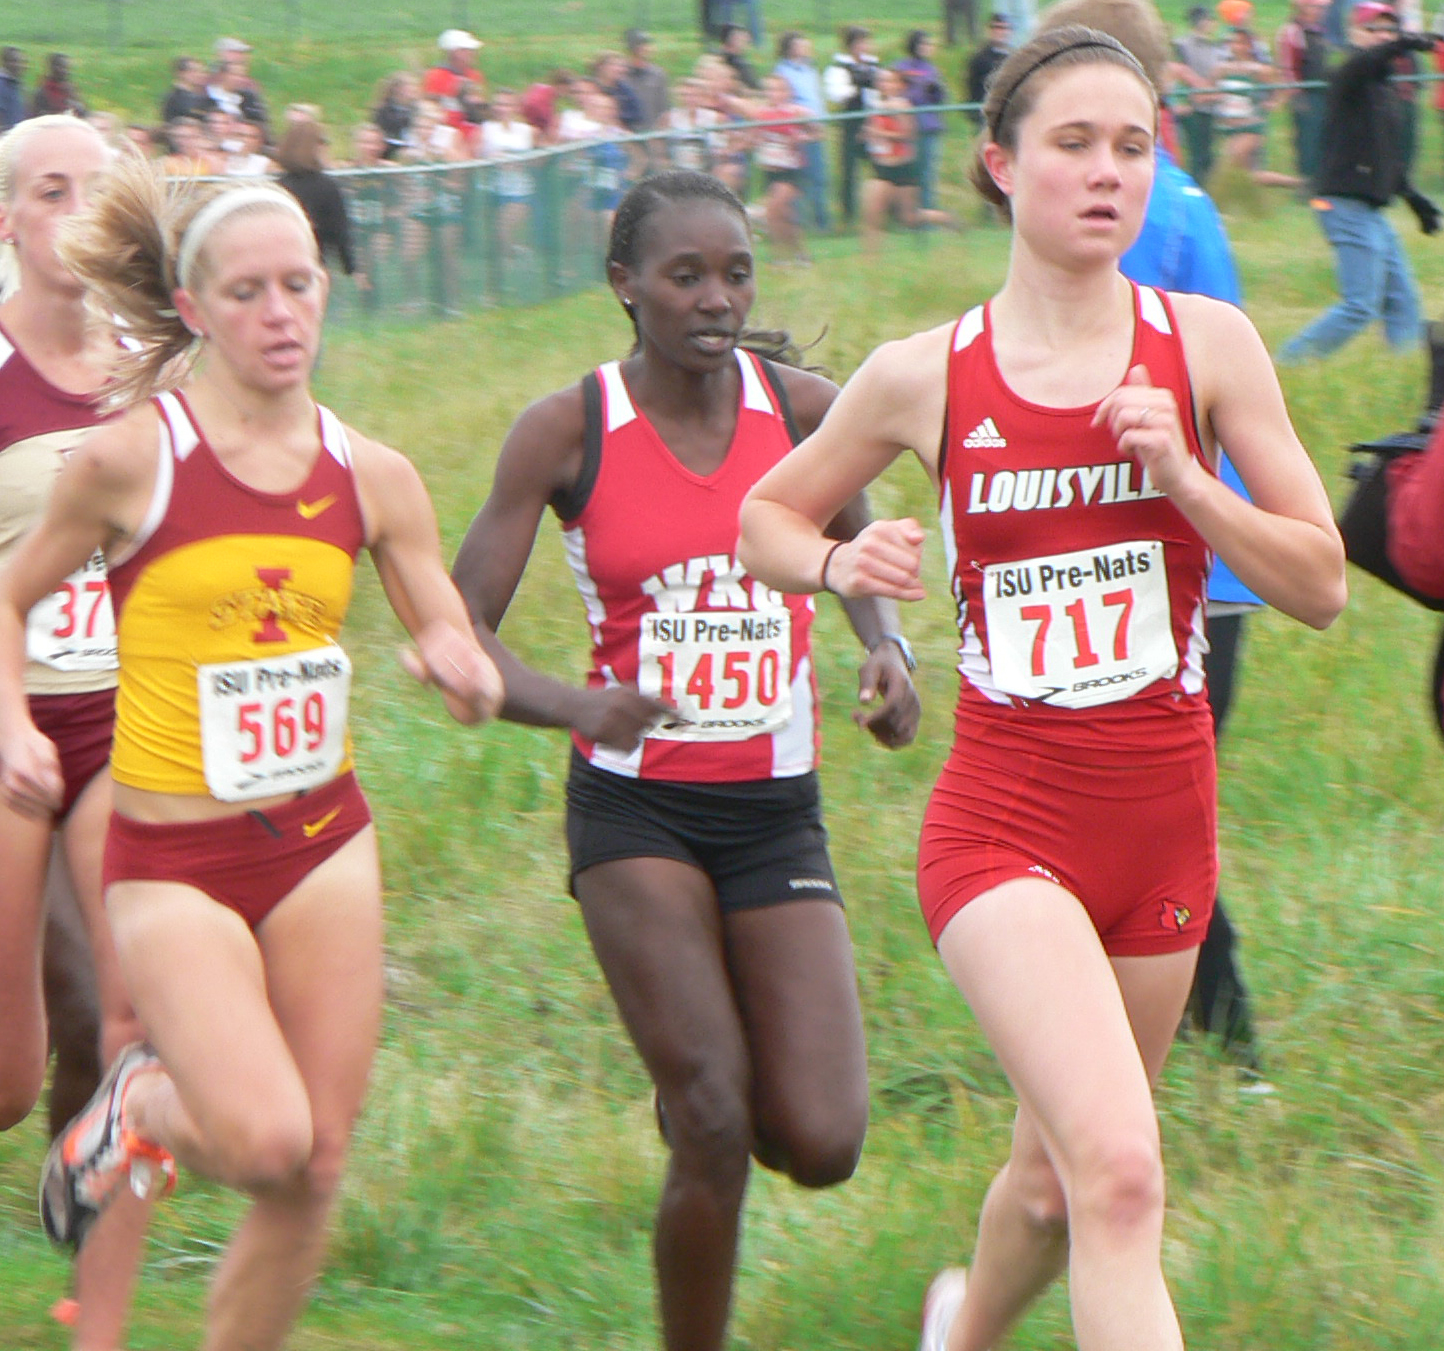 tarah-running-cross-country-for-louisville